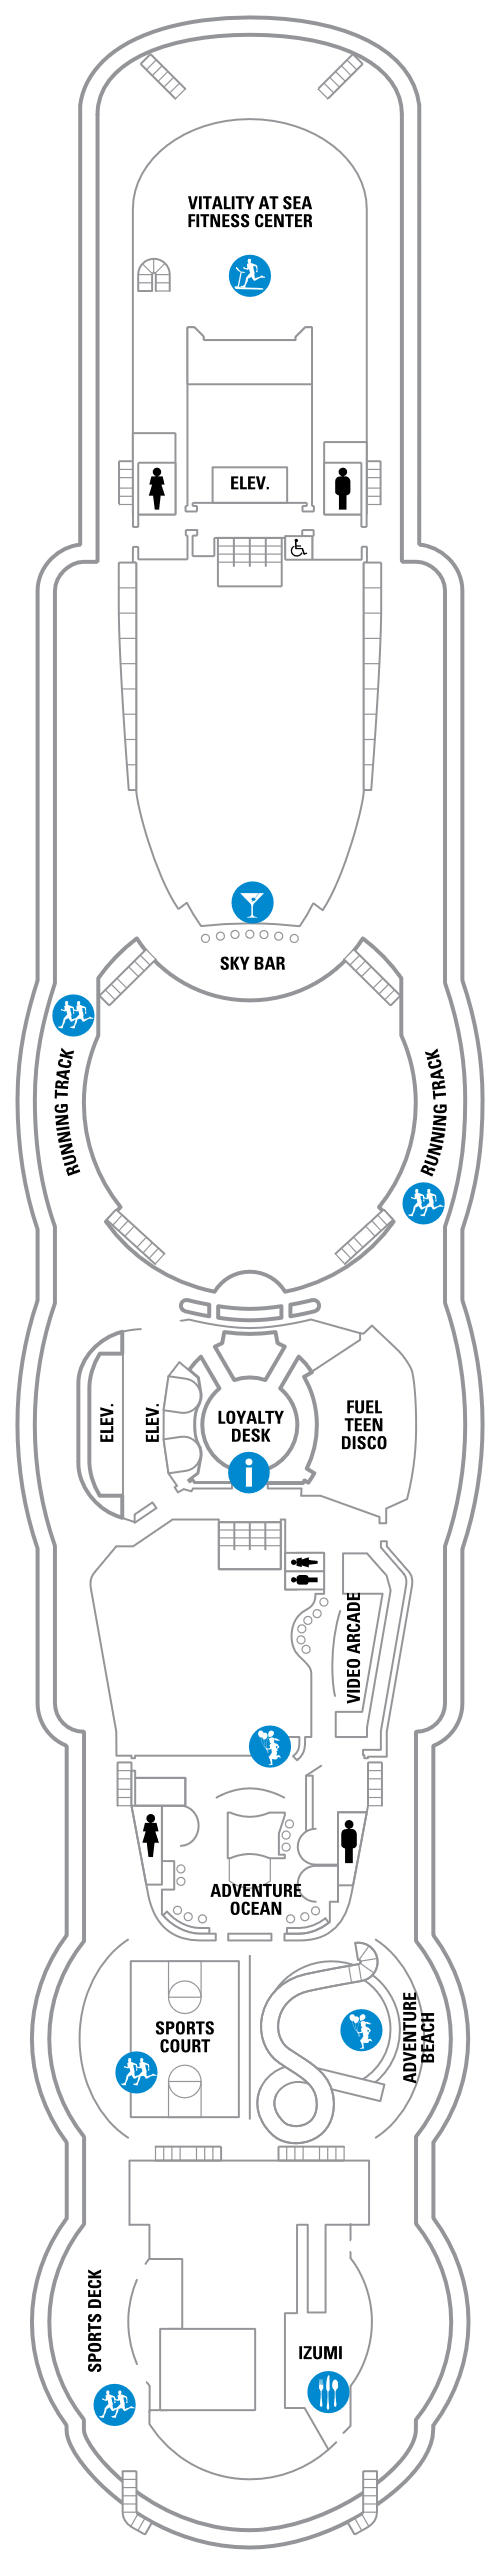 Jewel Of The Seas Deck 12 layout